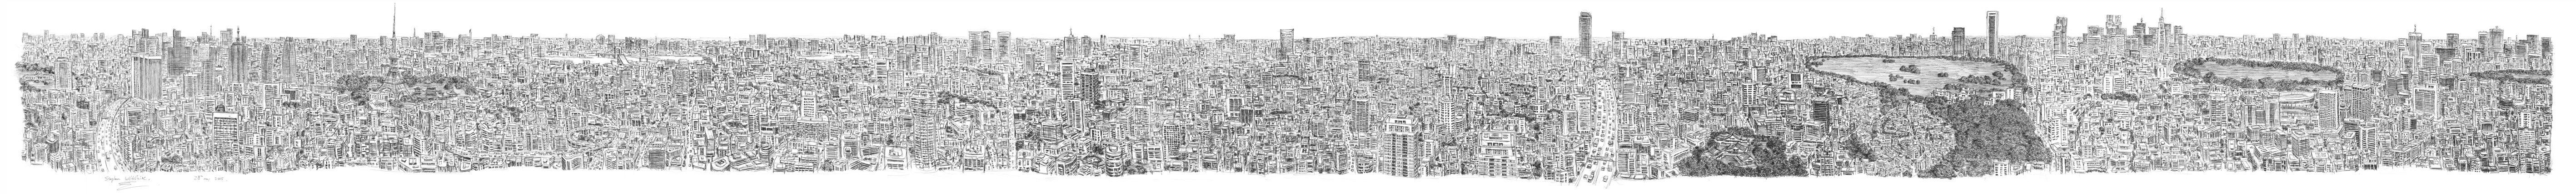 Tokyo_Panorama_by_Stephen_Wiltshire